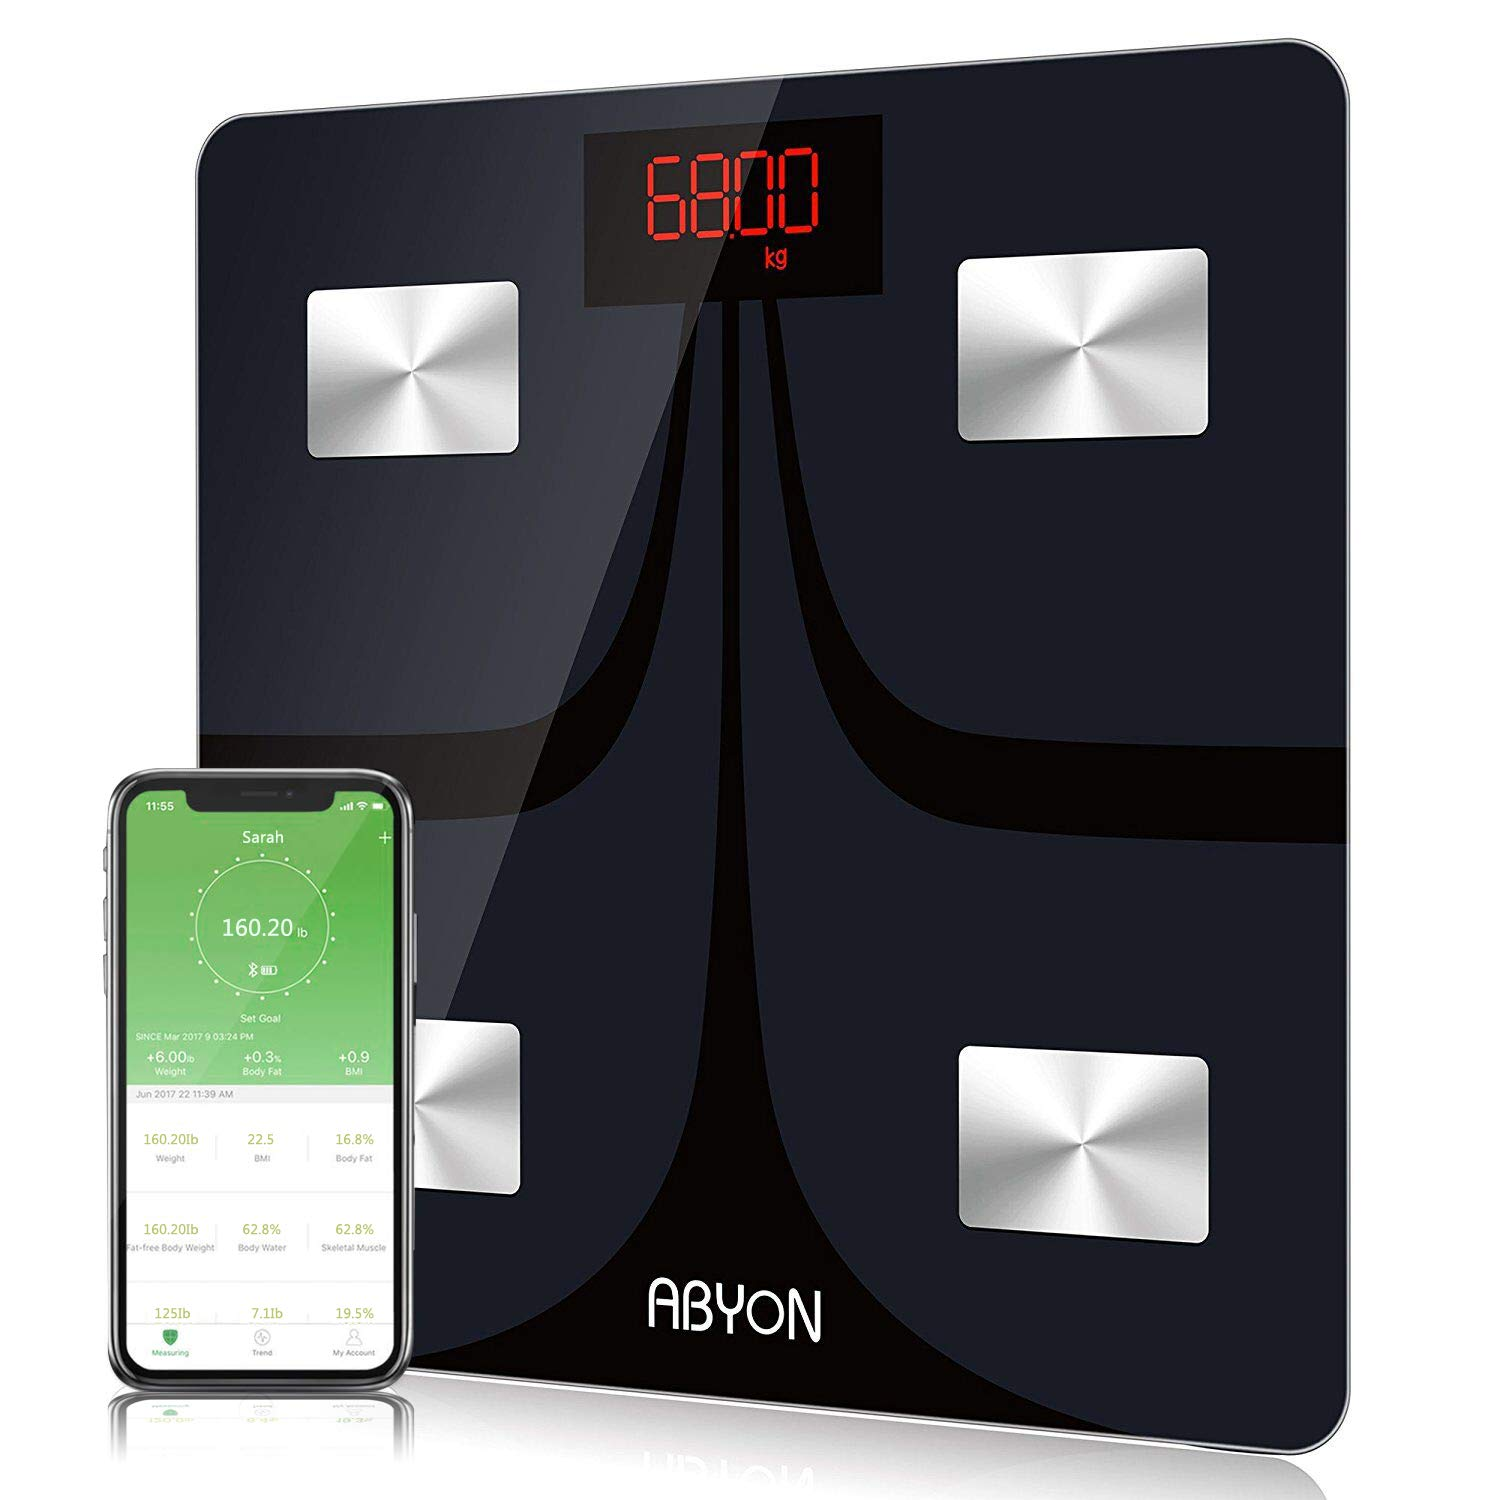 Bluetooth Smart Scales Digital Weight and Body Fat Monitors - in-Depth 11 Key Body Composition Analyzer with iOS & Android APP - Perfect for Your Fitness Journey, 400 Ib